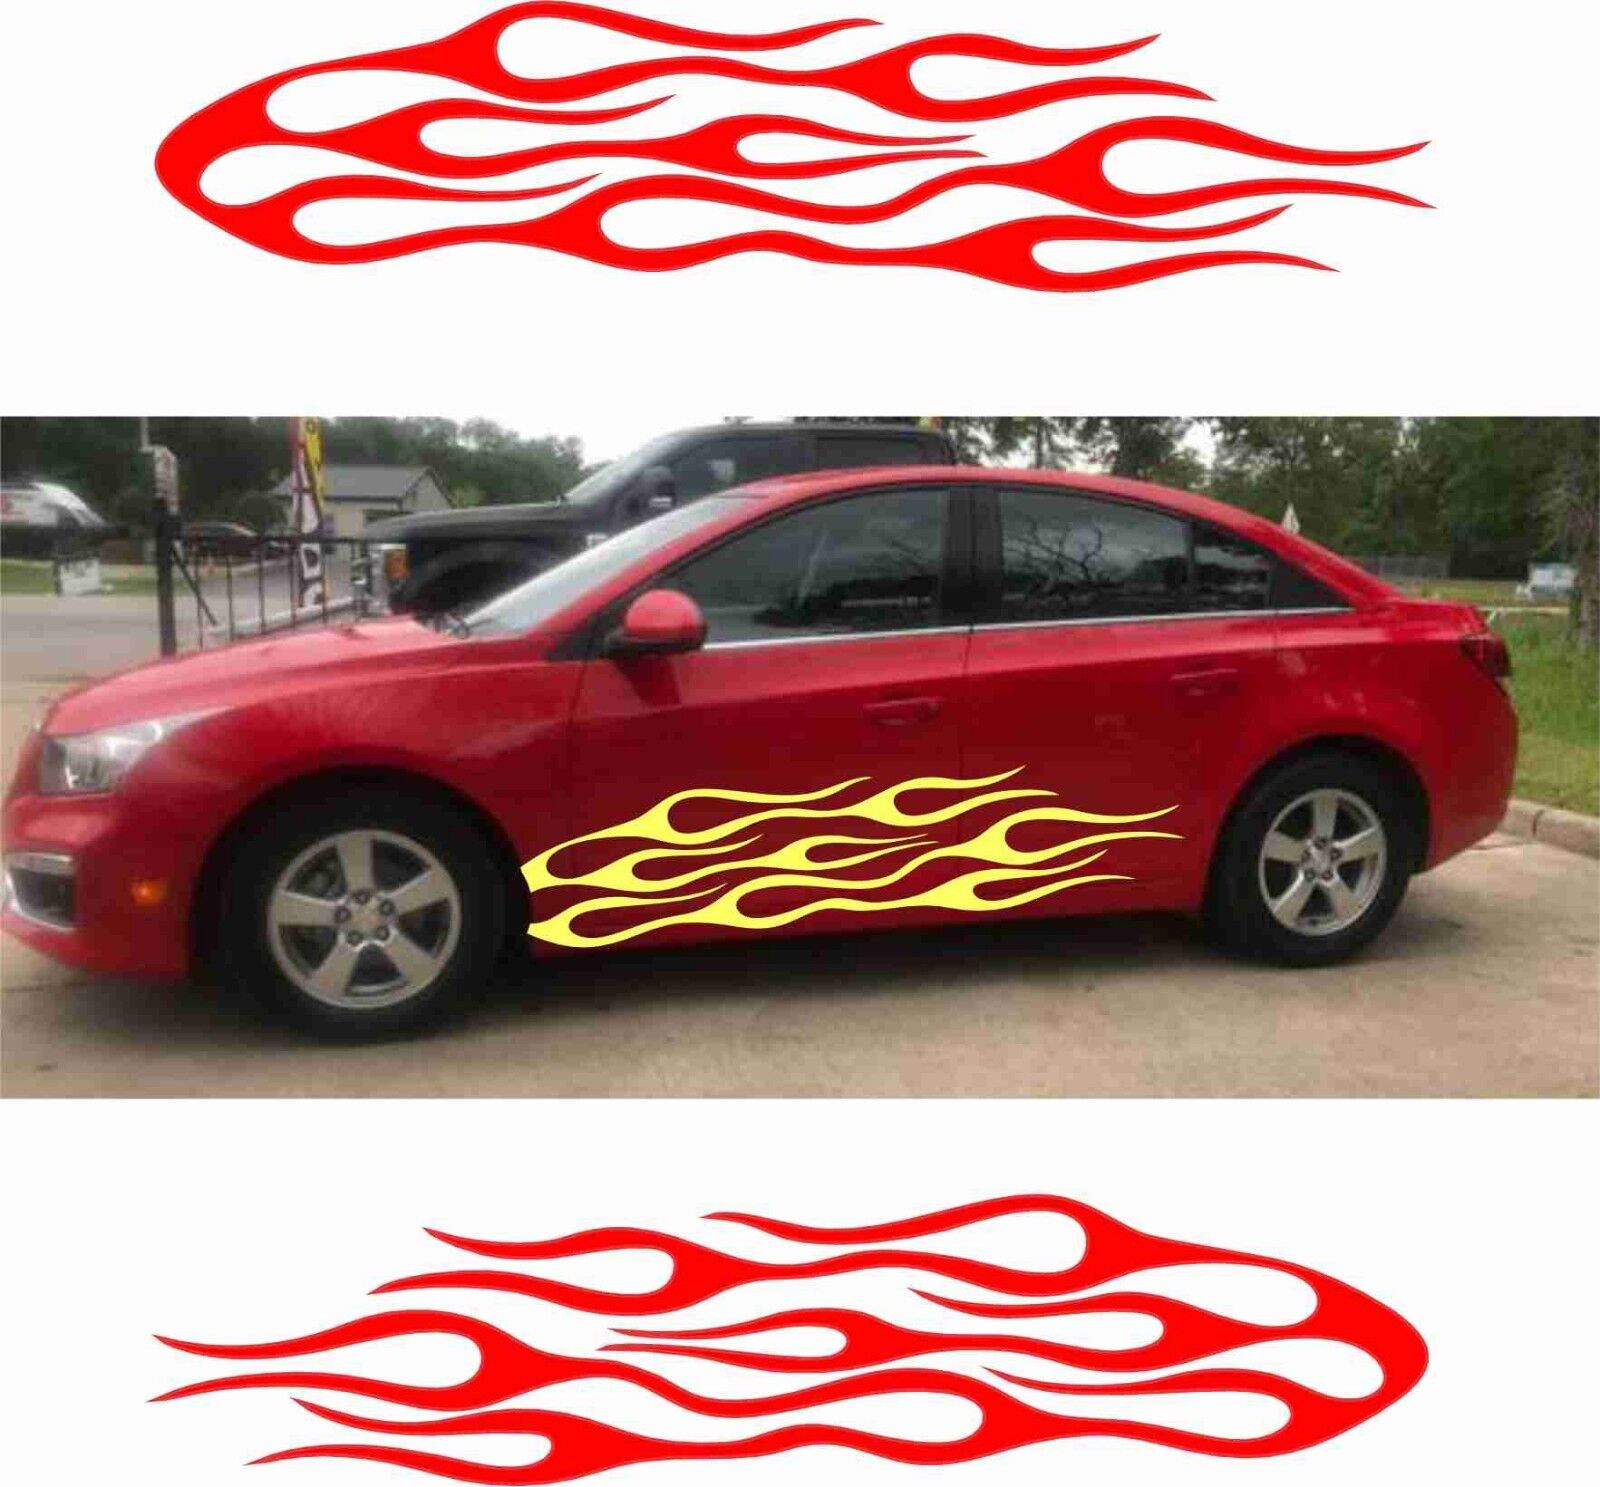 Firefighter 3-in-1 Combo Adhesive DECALS non-magnetic! Automotive